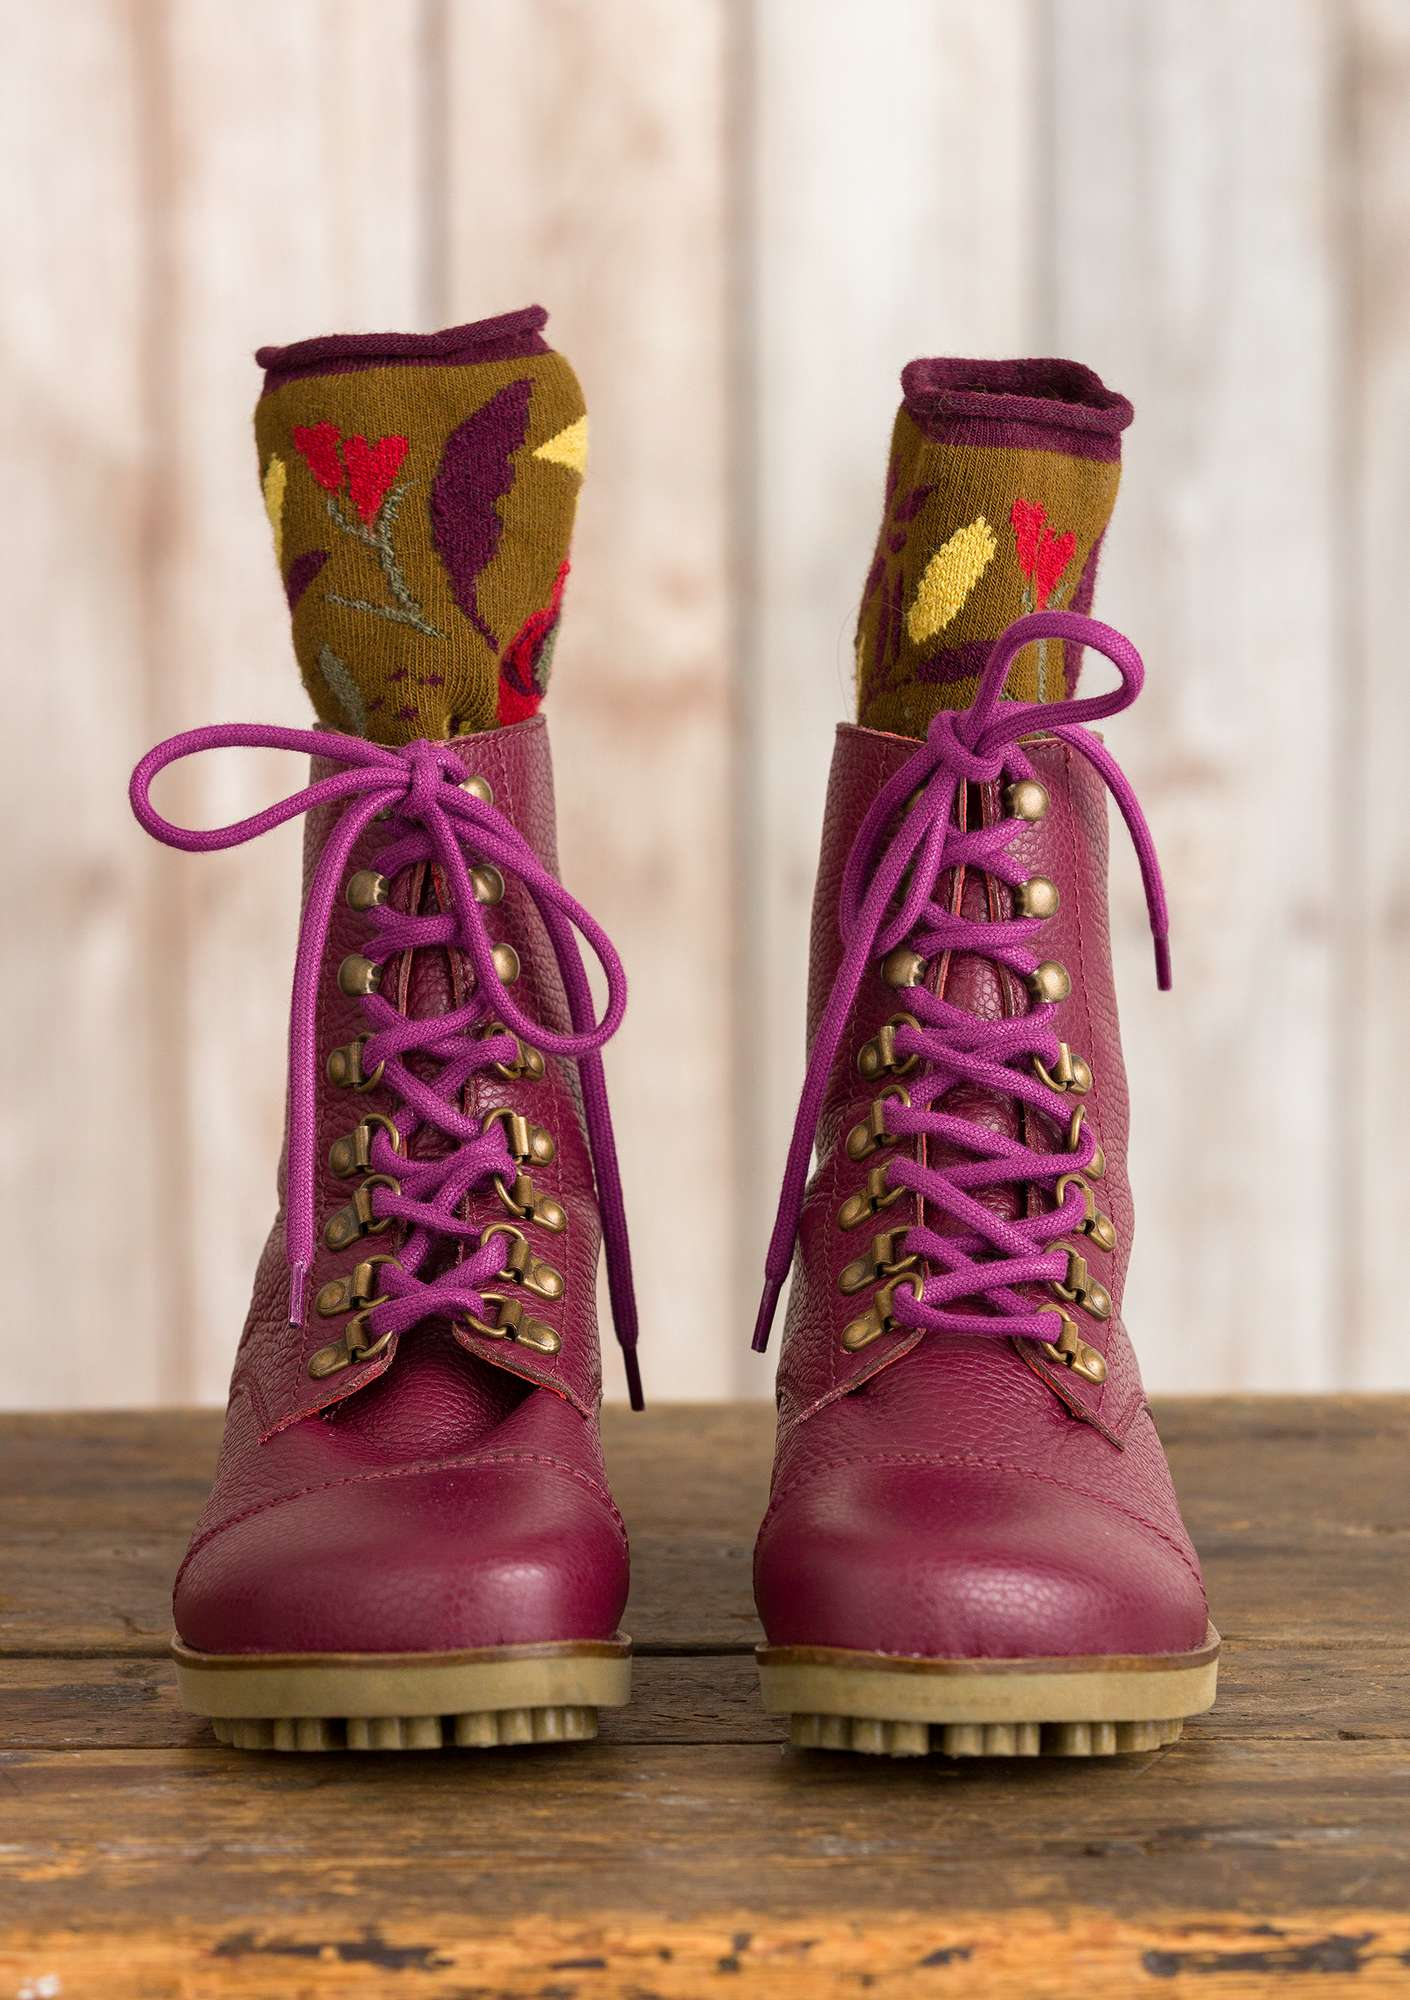 Bottines aubergine